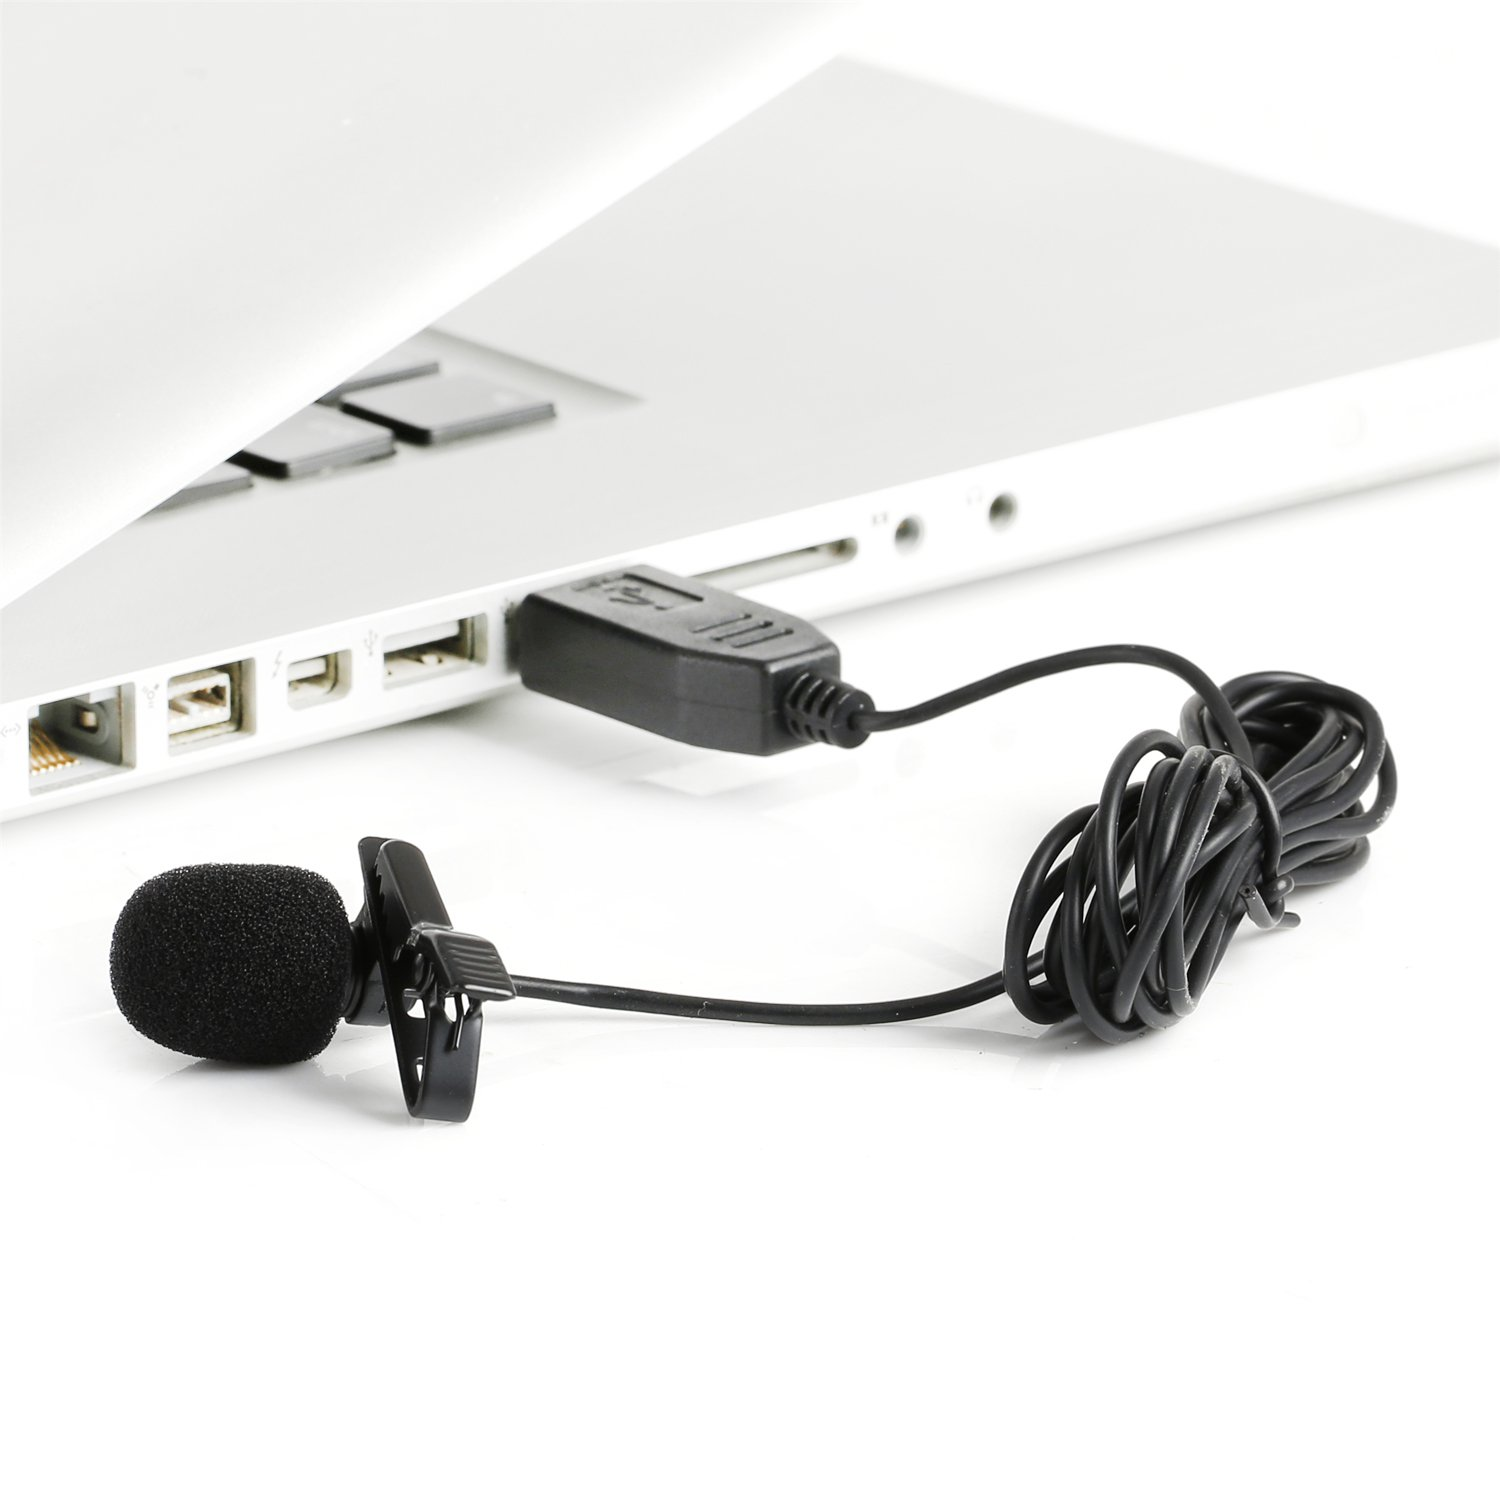 Saramonic Omnidirectional Lavalier Microphone with Standard USB Output to Computers Professional Video Microphone (SR-ULM5) by Saramonic